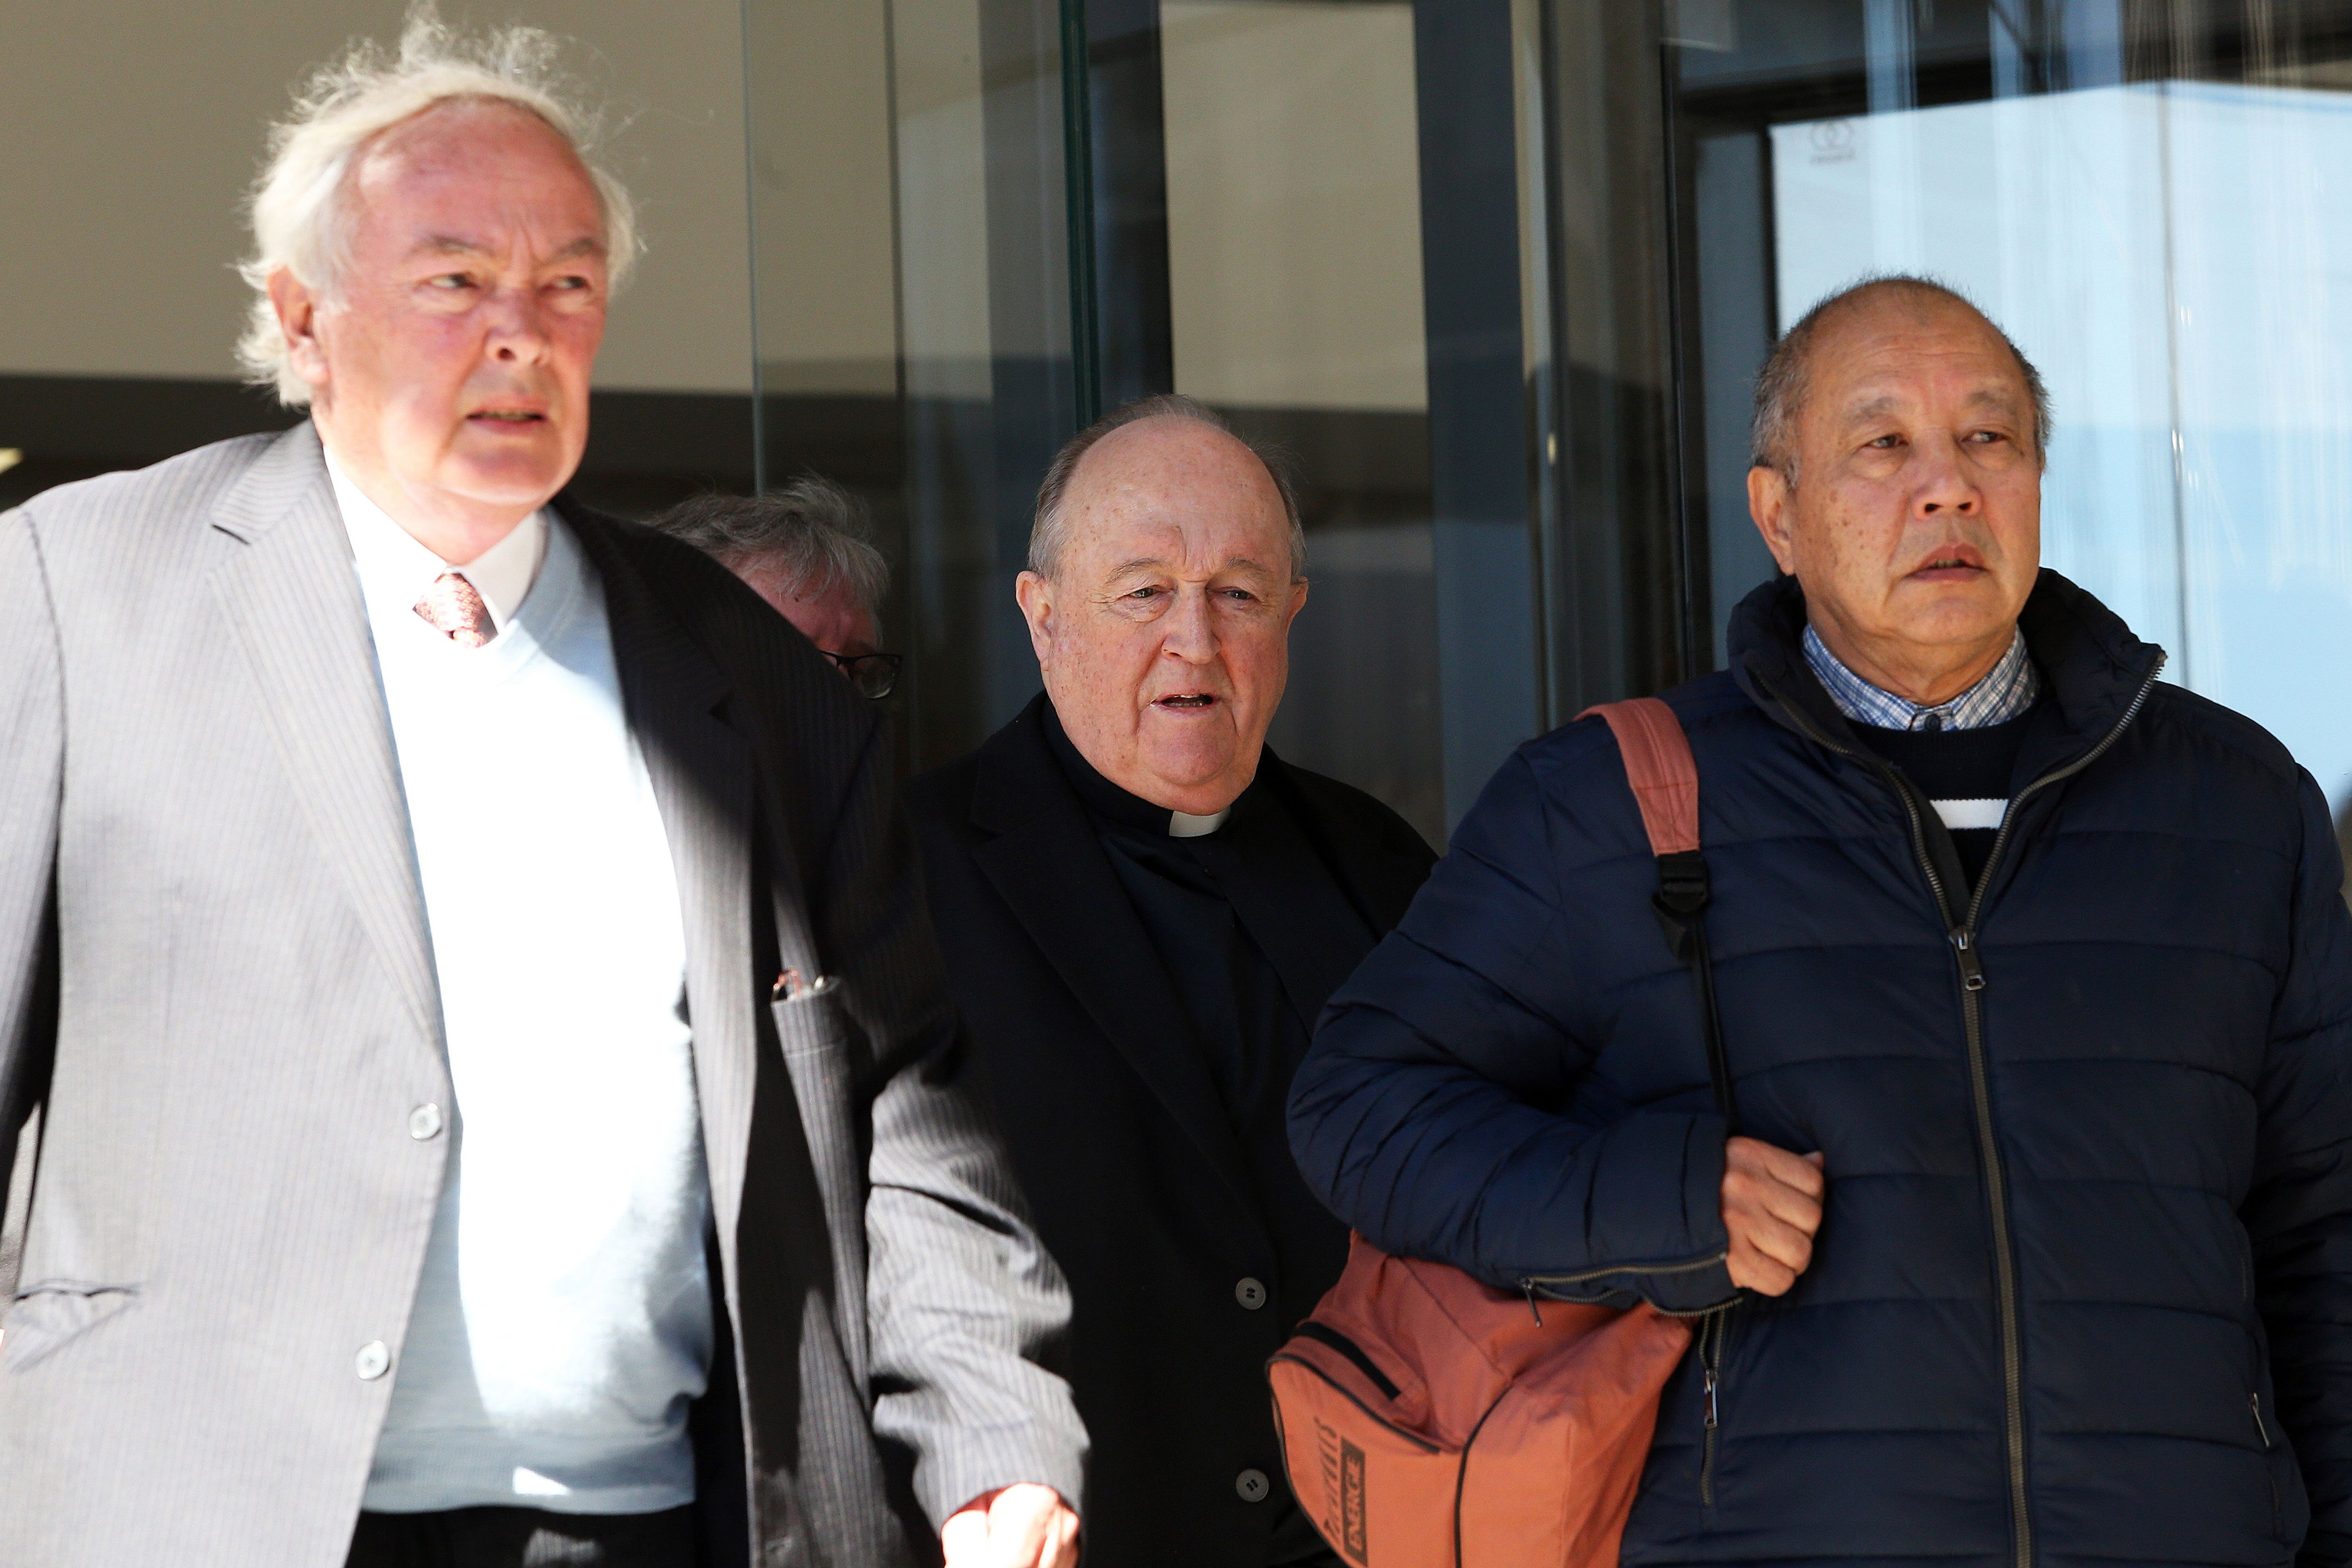 Former Australian archbishop Philip Wilson (C) leaves a court in Newcastle on August 14, 2018. - Wilson, a former Australian archbishop convicted of concealing abuse by a notorious paedophile priest in the 1970s, was spared jail on August 14, with a court ruling he can serve his sentence in home detention. (PETER LORIMER/AFP/Getty Images)